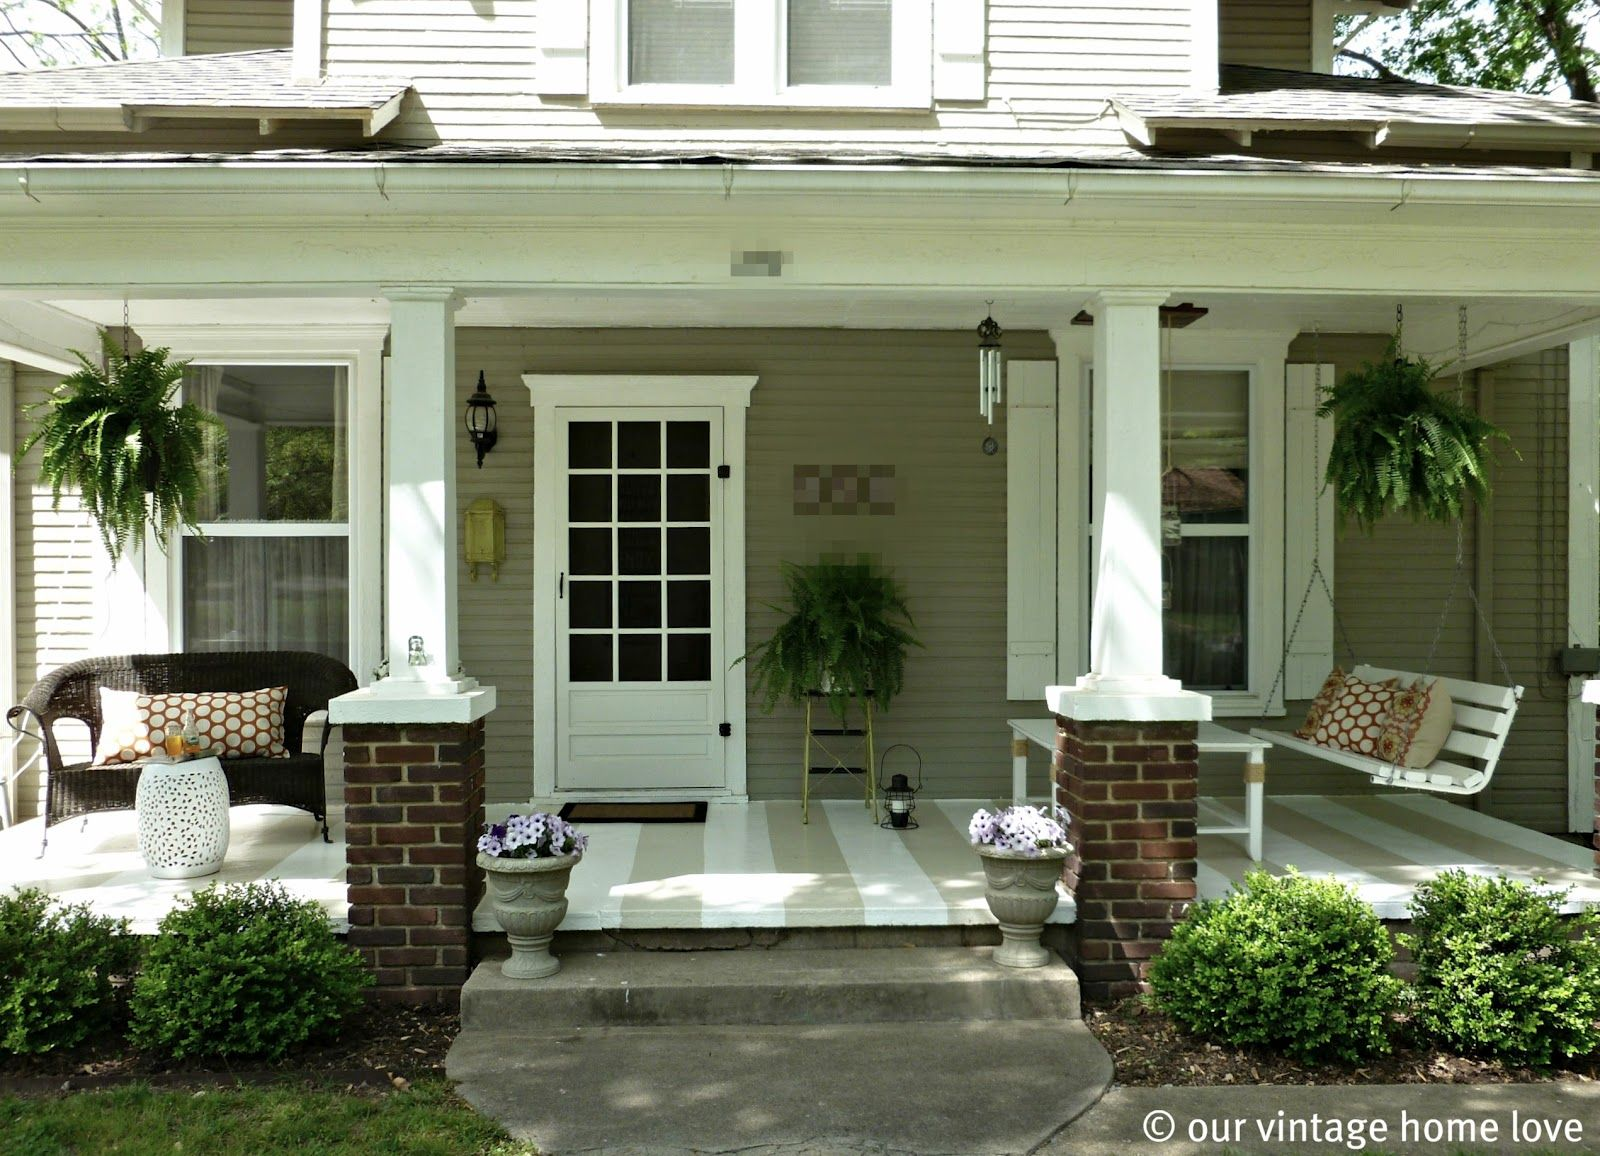 Front Porch Design Ideas veranda7 front porch design ideas to inspire you in building and decorating your own Front Porch Decorating Ideas Our Vintage Home Love Spring